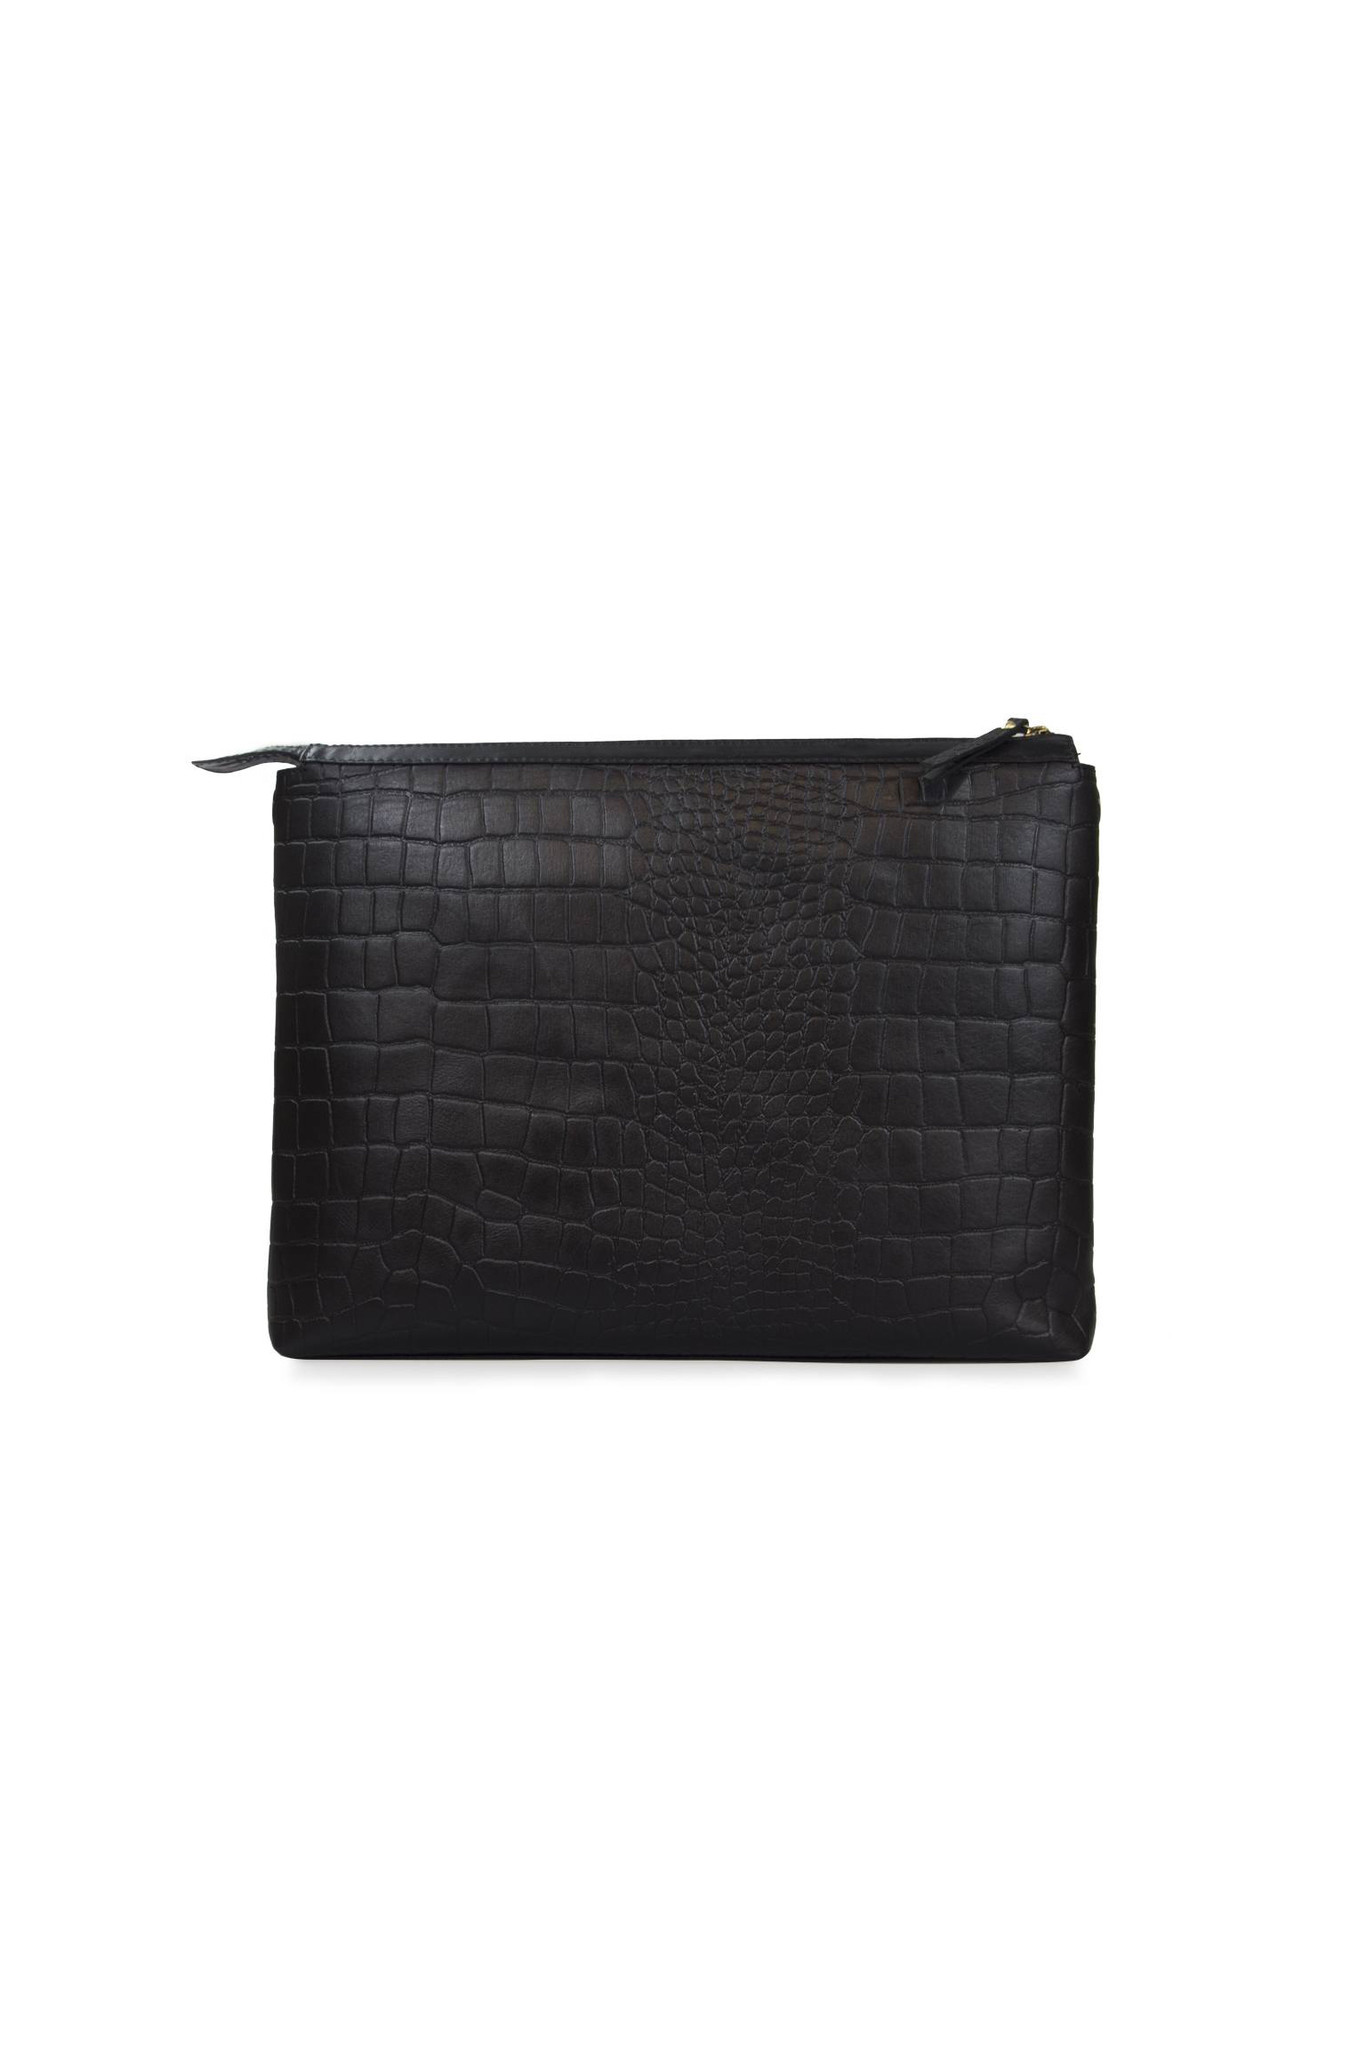 Scarlet Bag - Black Croco Classic Leather-3